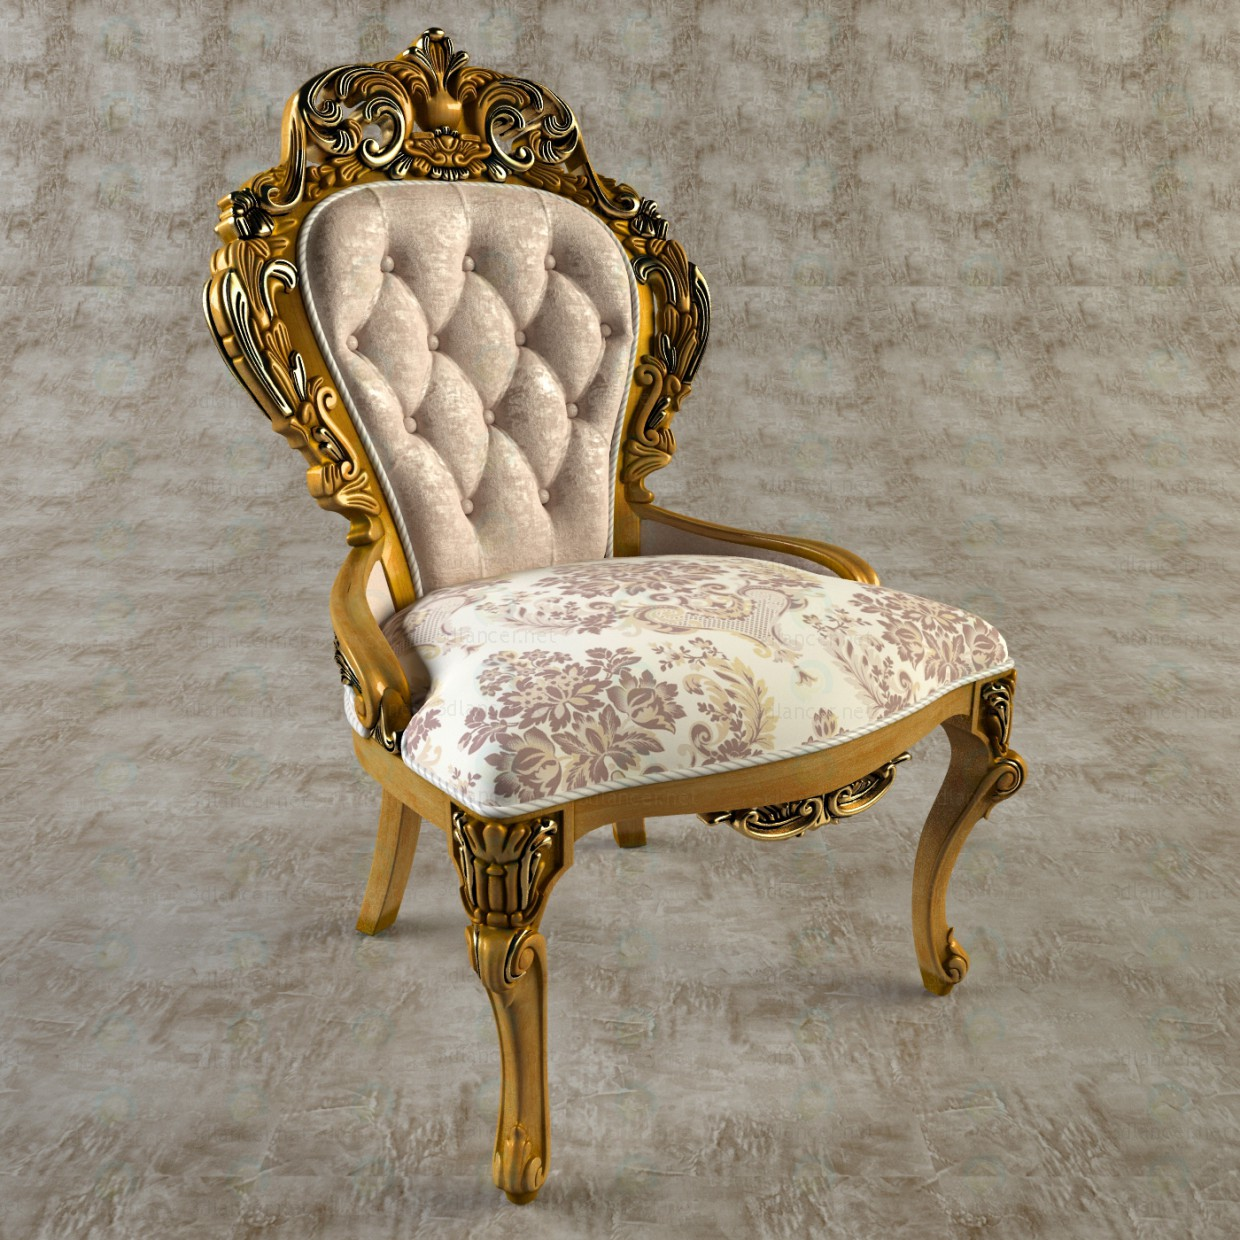 3d Carved chair model buy - render